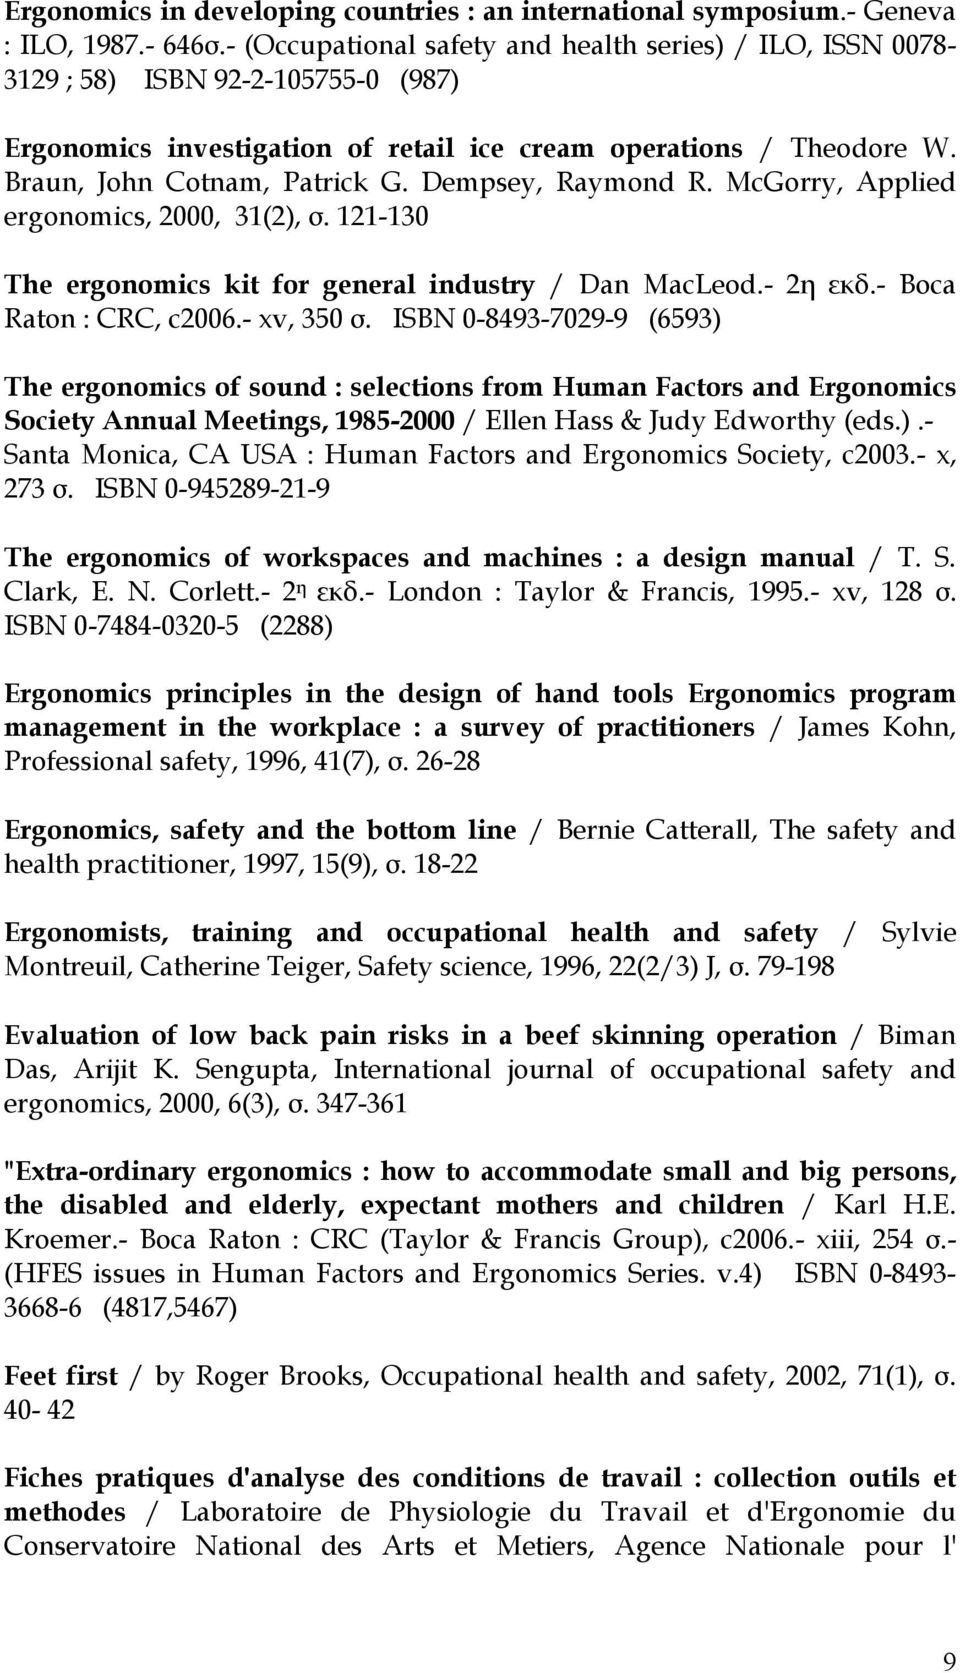 Dempsey, Raymond R. McGorry, Applied ergonomics, 2000, 31(2), σ. 121-130 The ergonomics kit for general industry / Dan MacLeod.- 2η εκδ.- Boca Raton : CRC, c2006.- xv, 350 σ.